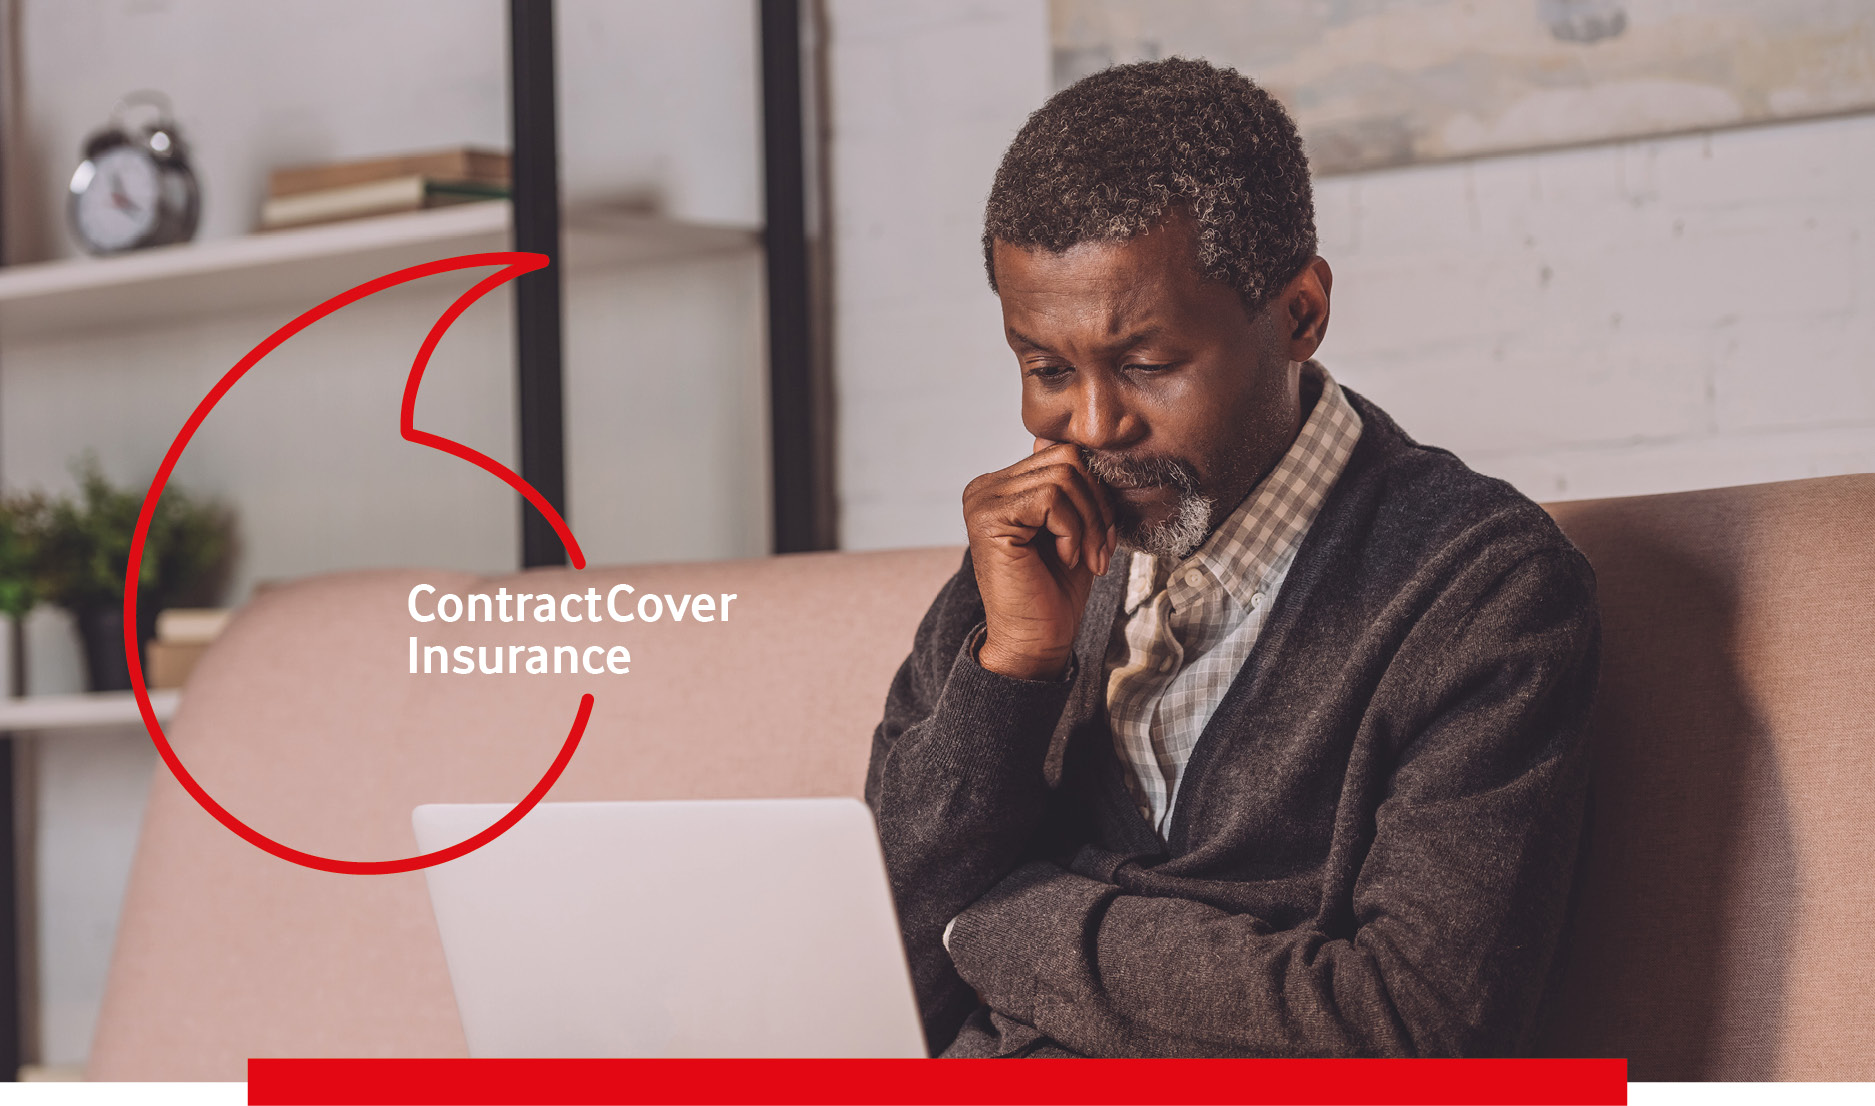 Vodacom Contract Cover Insurance